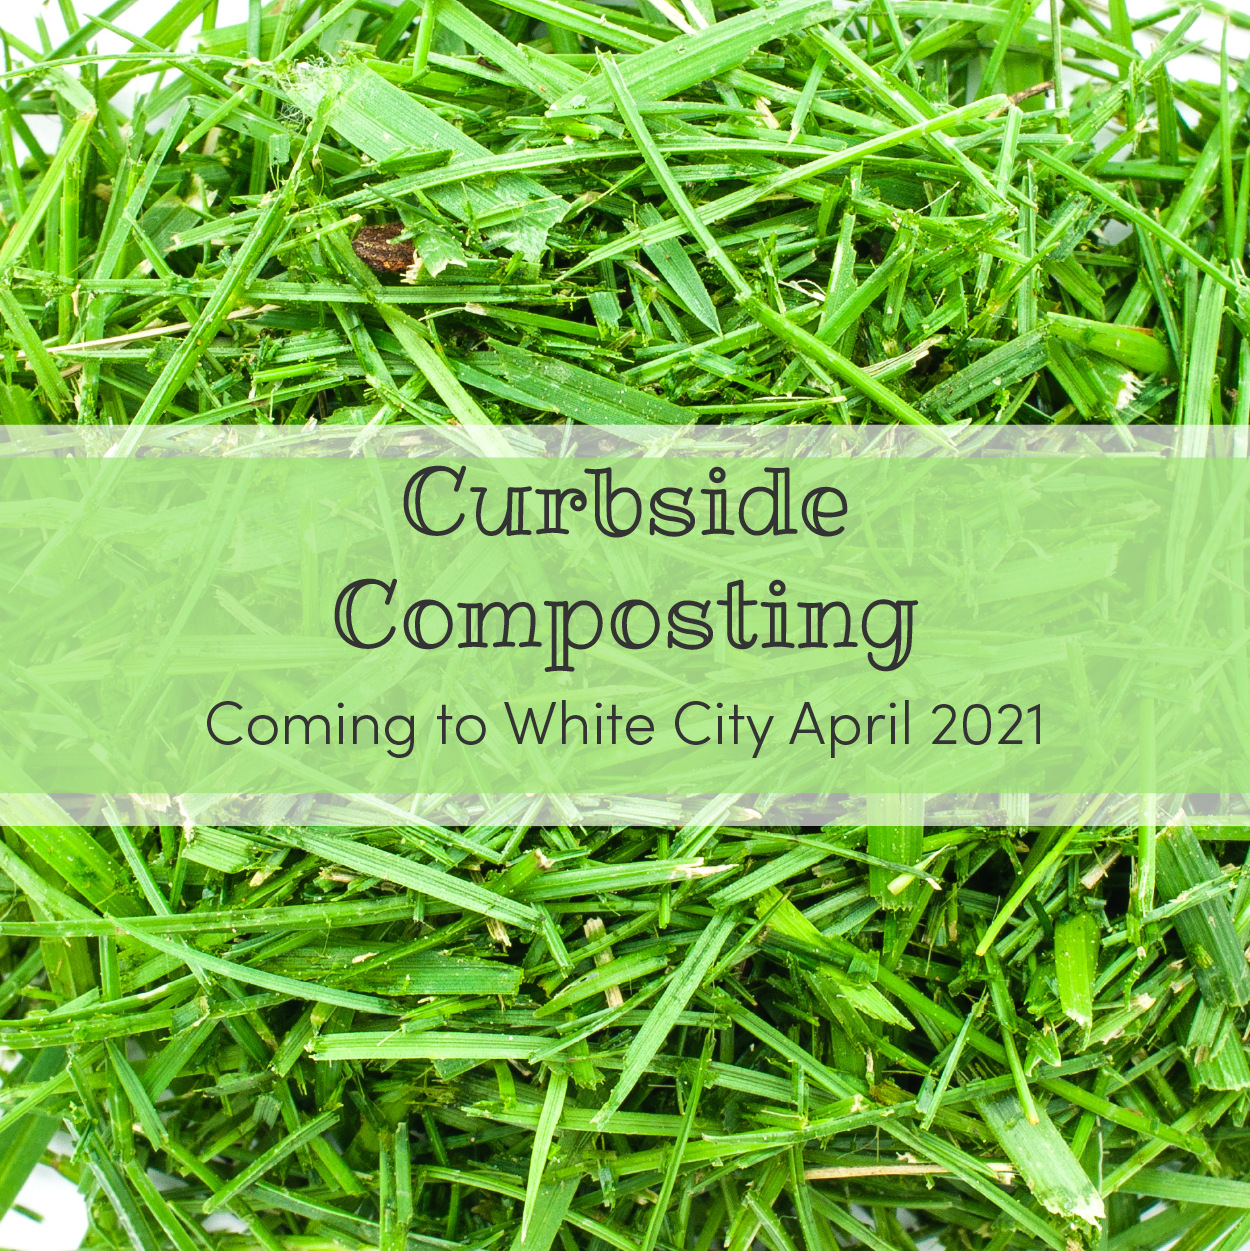 Compost Pick Up